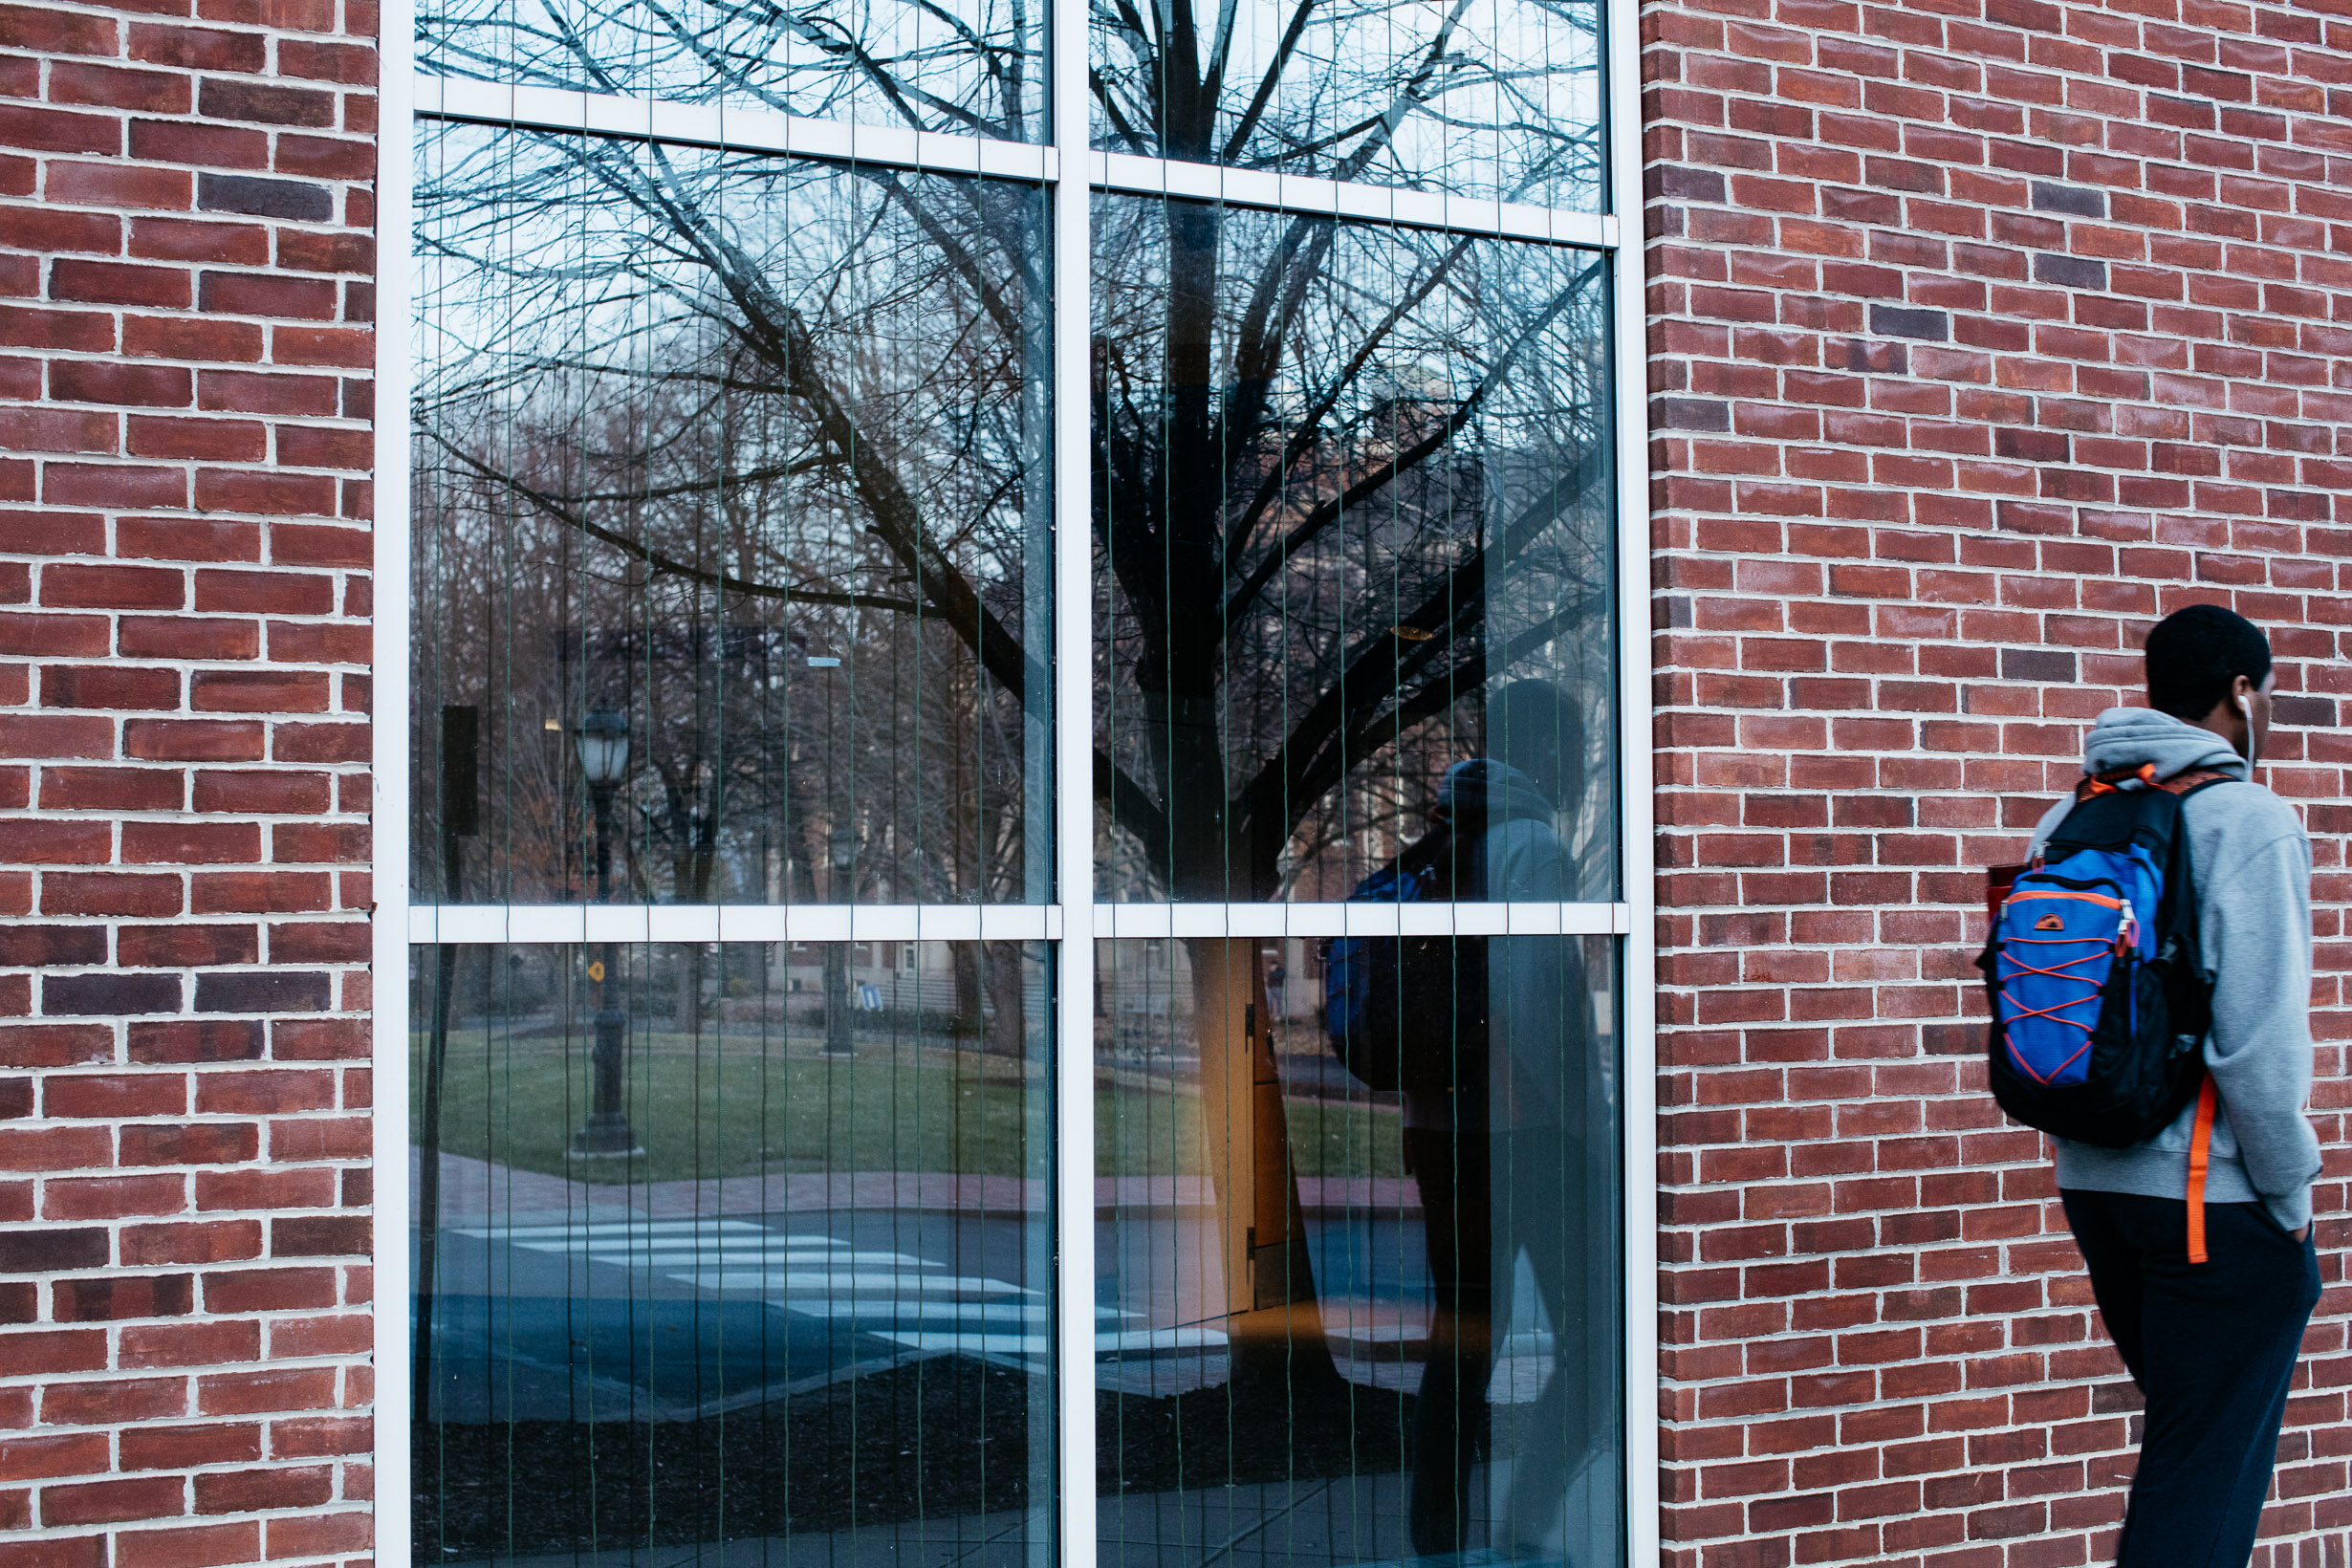 A male student walks past a window of Hugel Science Center, which has cords on it to discourage birds from crashing into it.